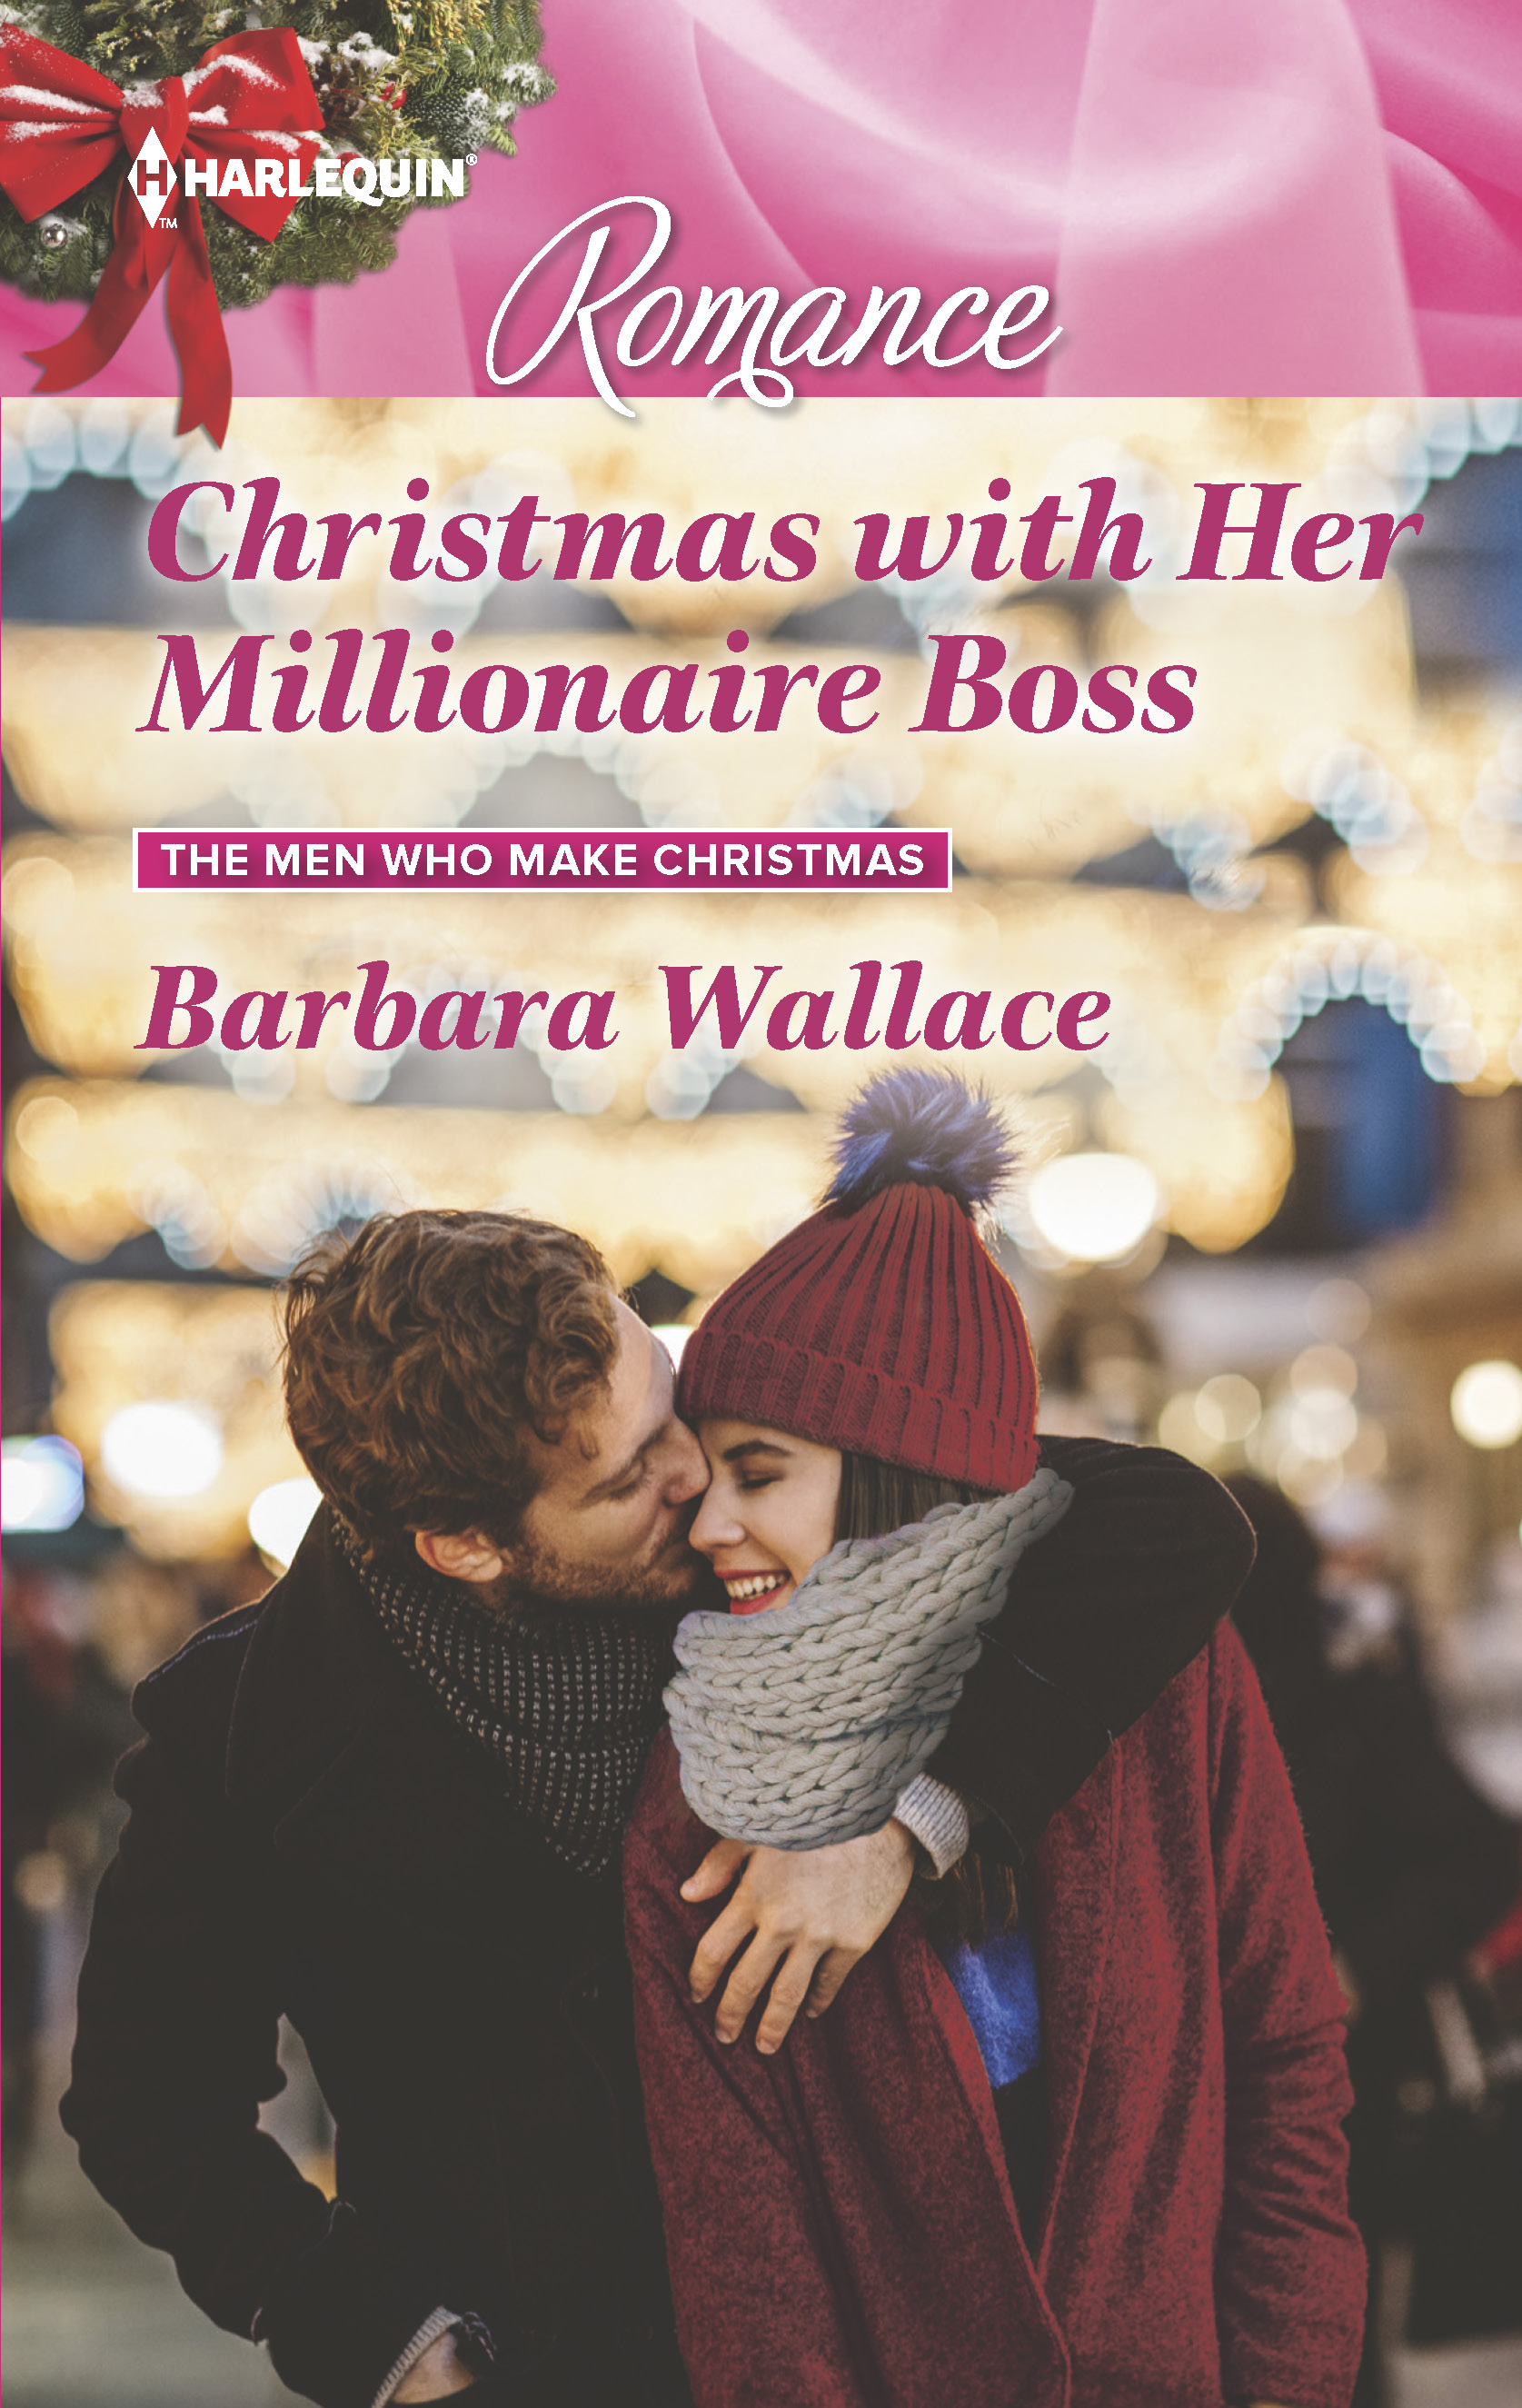 Read an Excerpt from Christmas with her Millionaire Boss